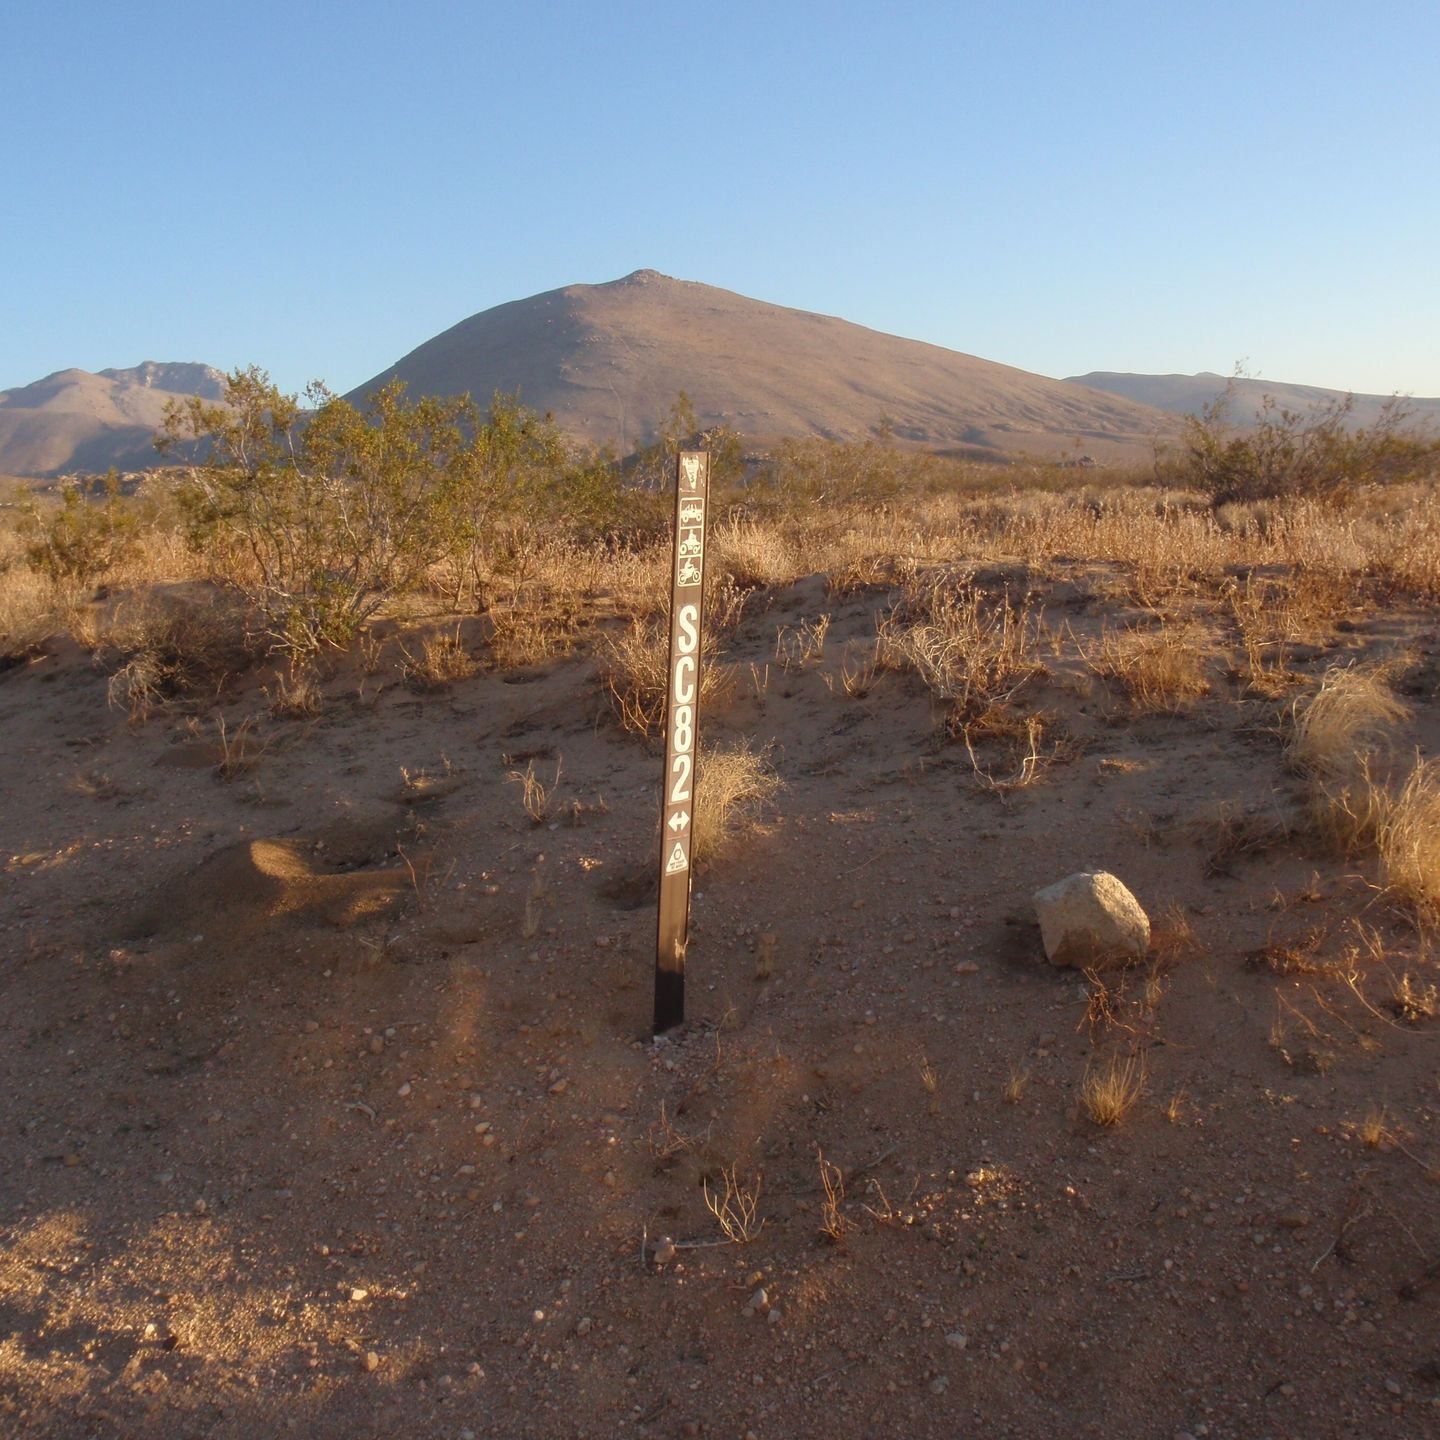 SC65 - McIvers Cabin - Waypoint 7: Intersection with SC82